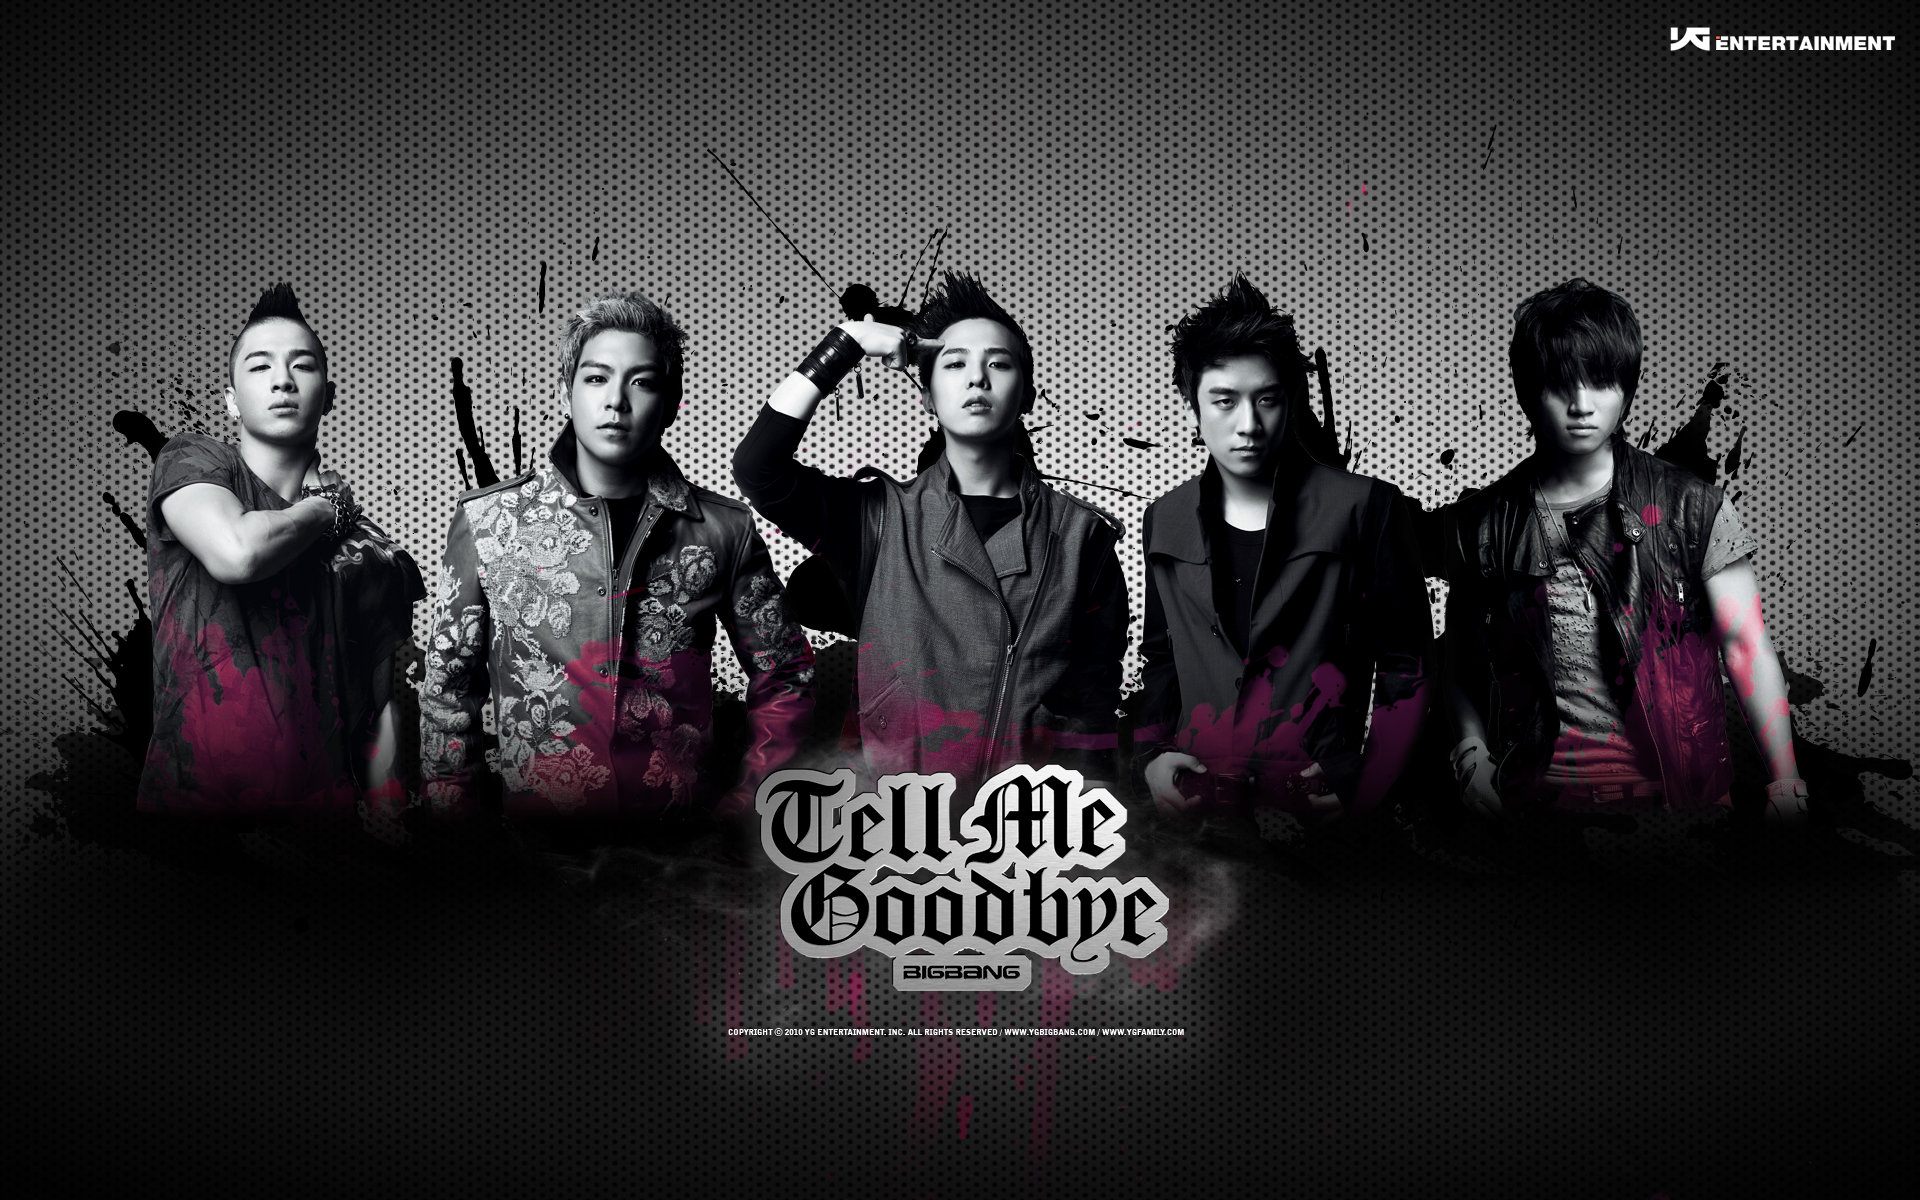 Free Download Bigbang Wallpaper Id 49026 Hd 1920x1200 For Pc